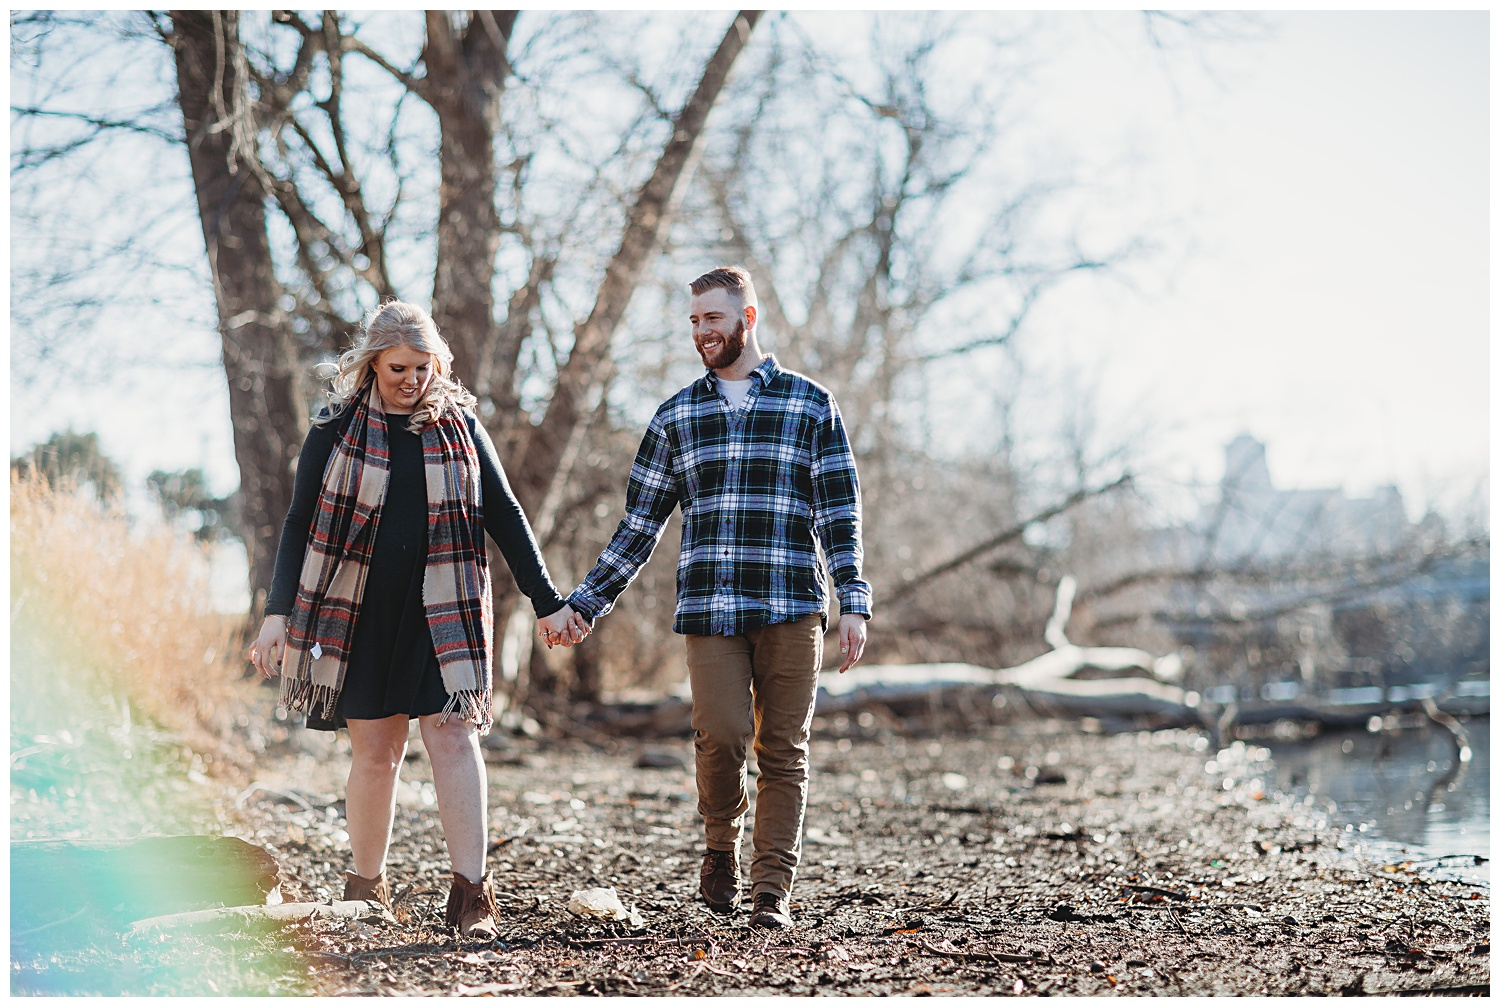 East Lansing Old Town Campus Engagement Session_0041.jpg